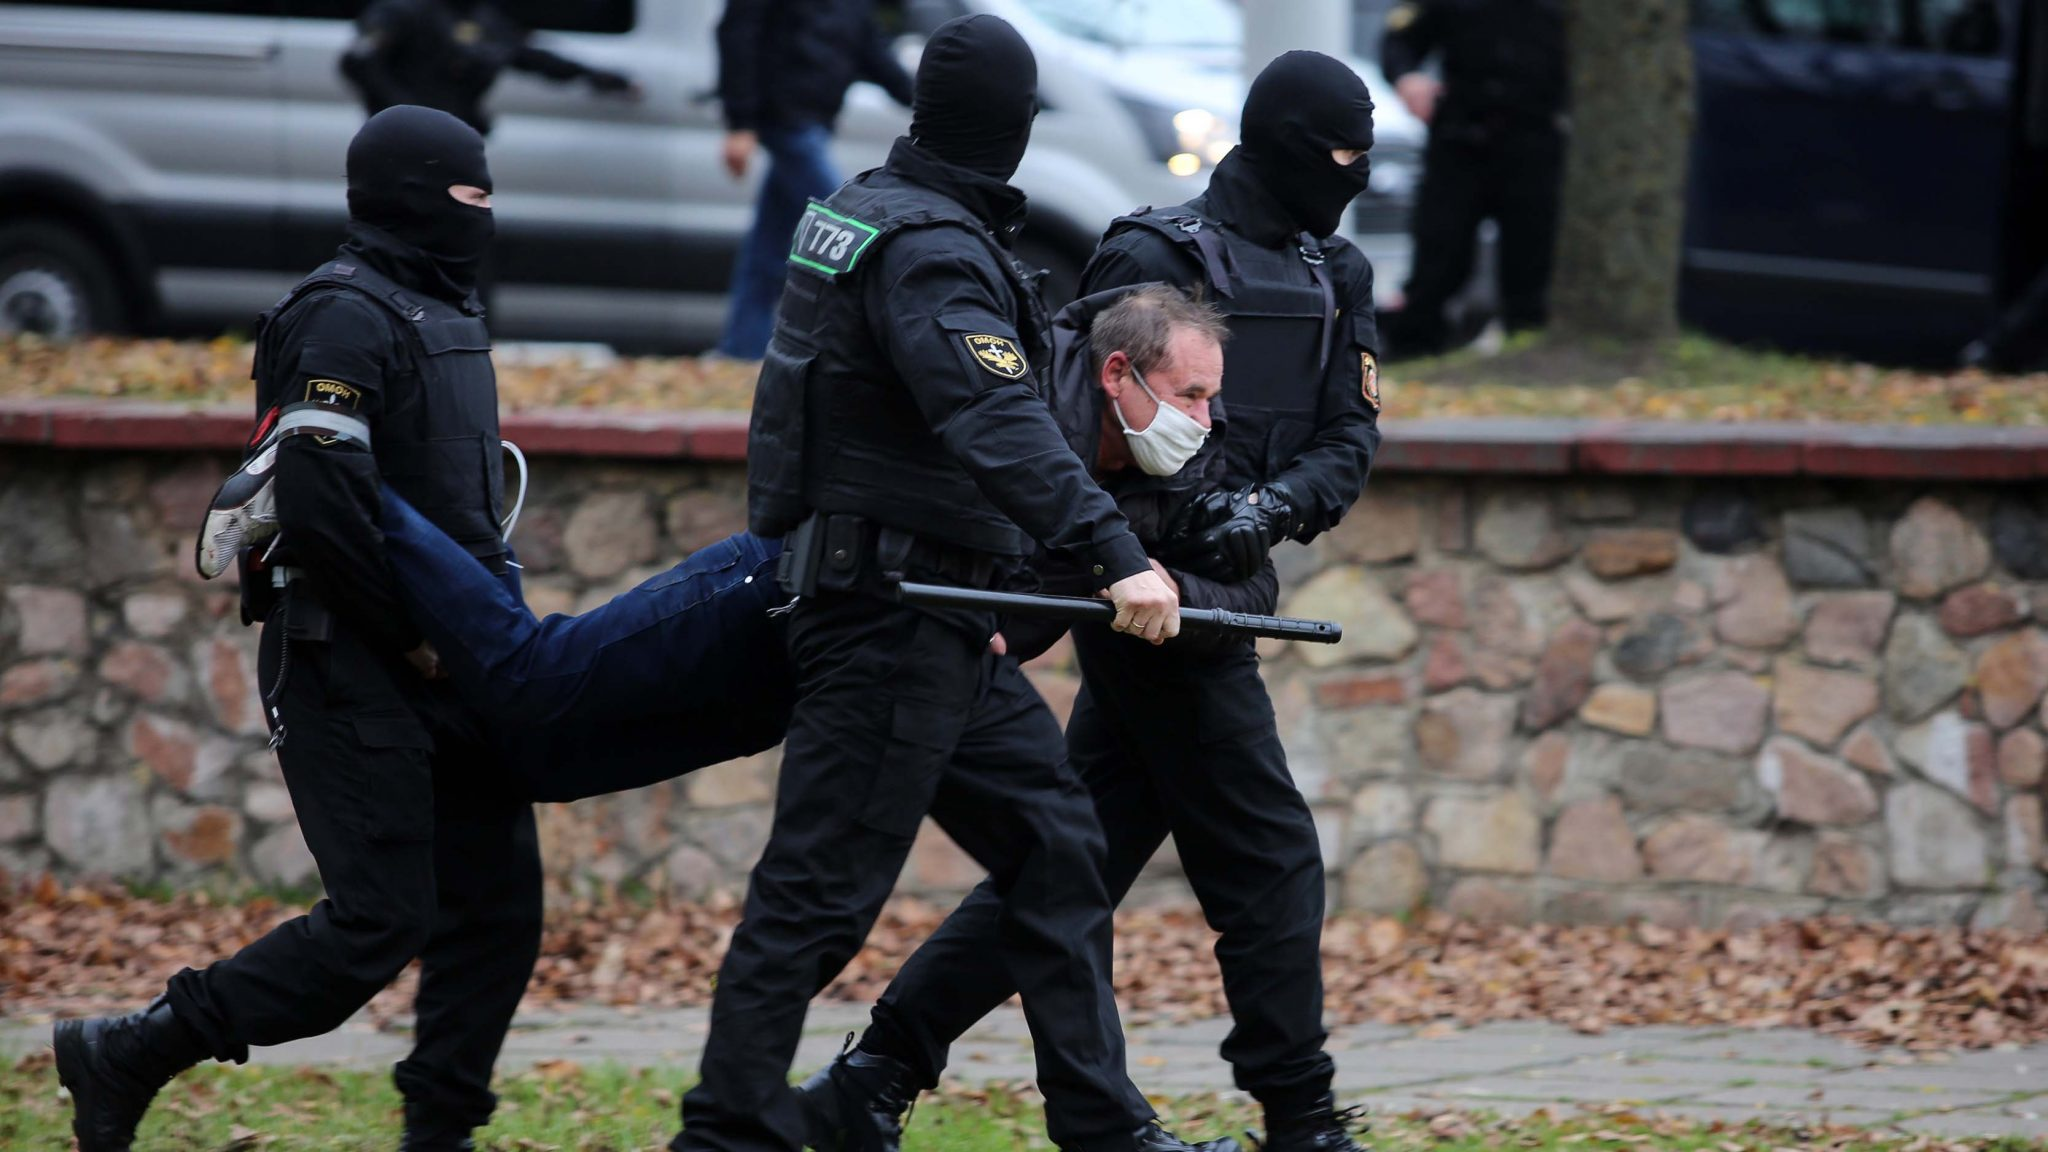 Belarus police fire in the air, detain protesters